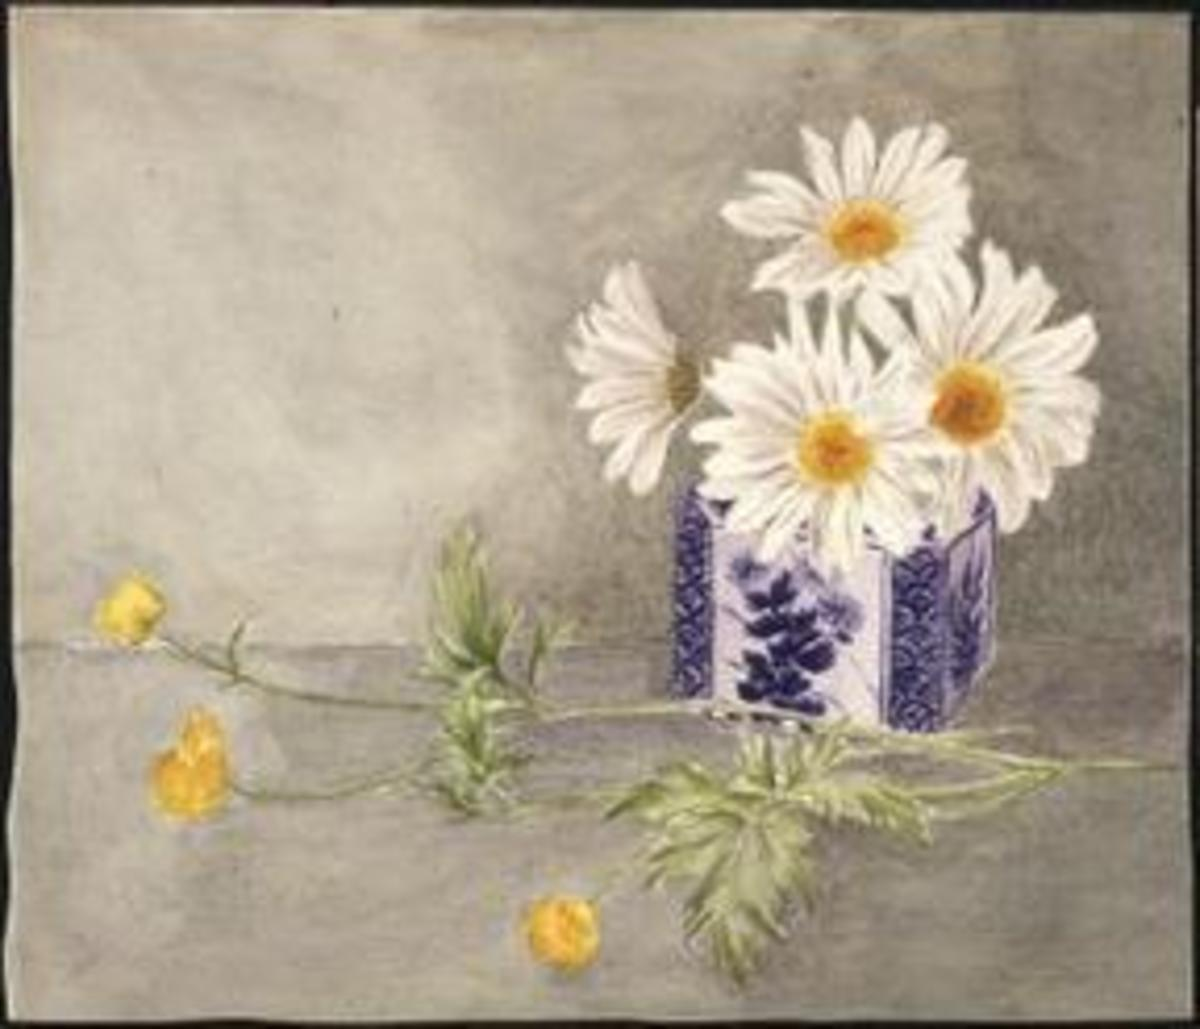 Flower watercolor done by Potter when she was about 15 years old.